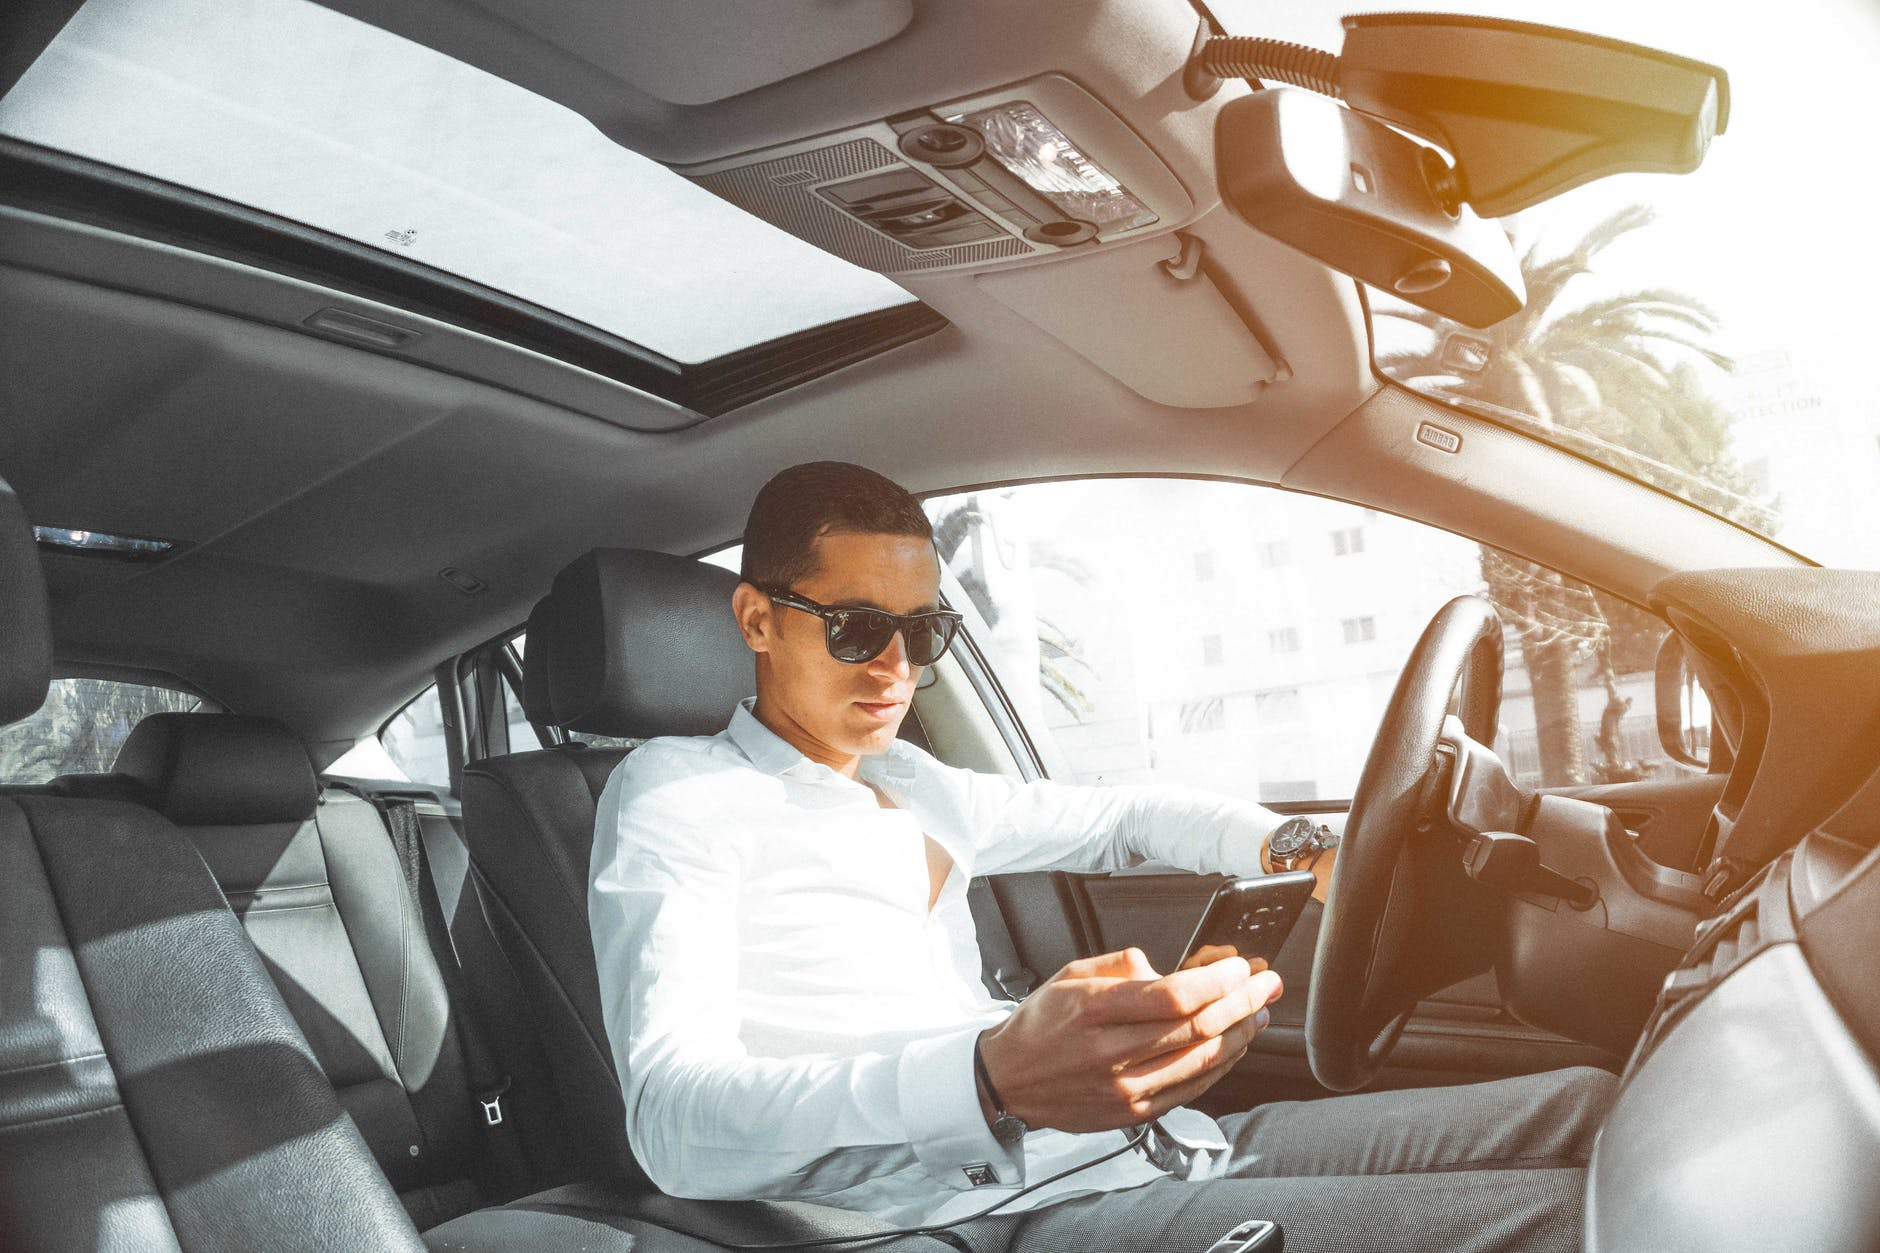 Mobile phone whilst driving - humanfactors101.com